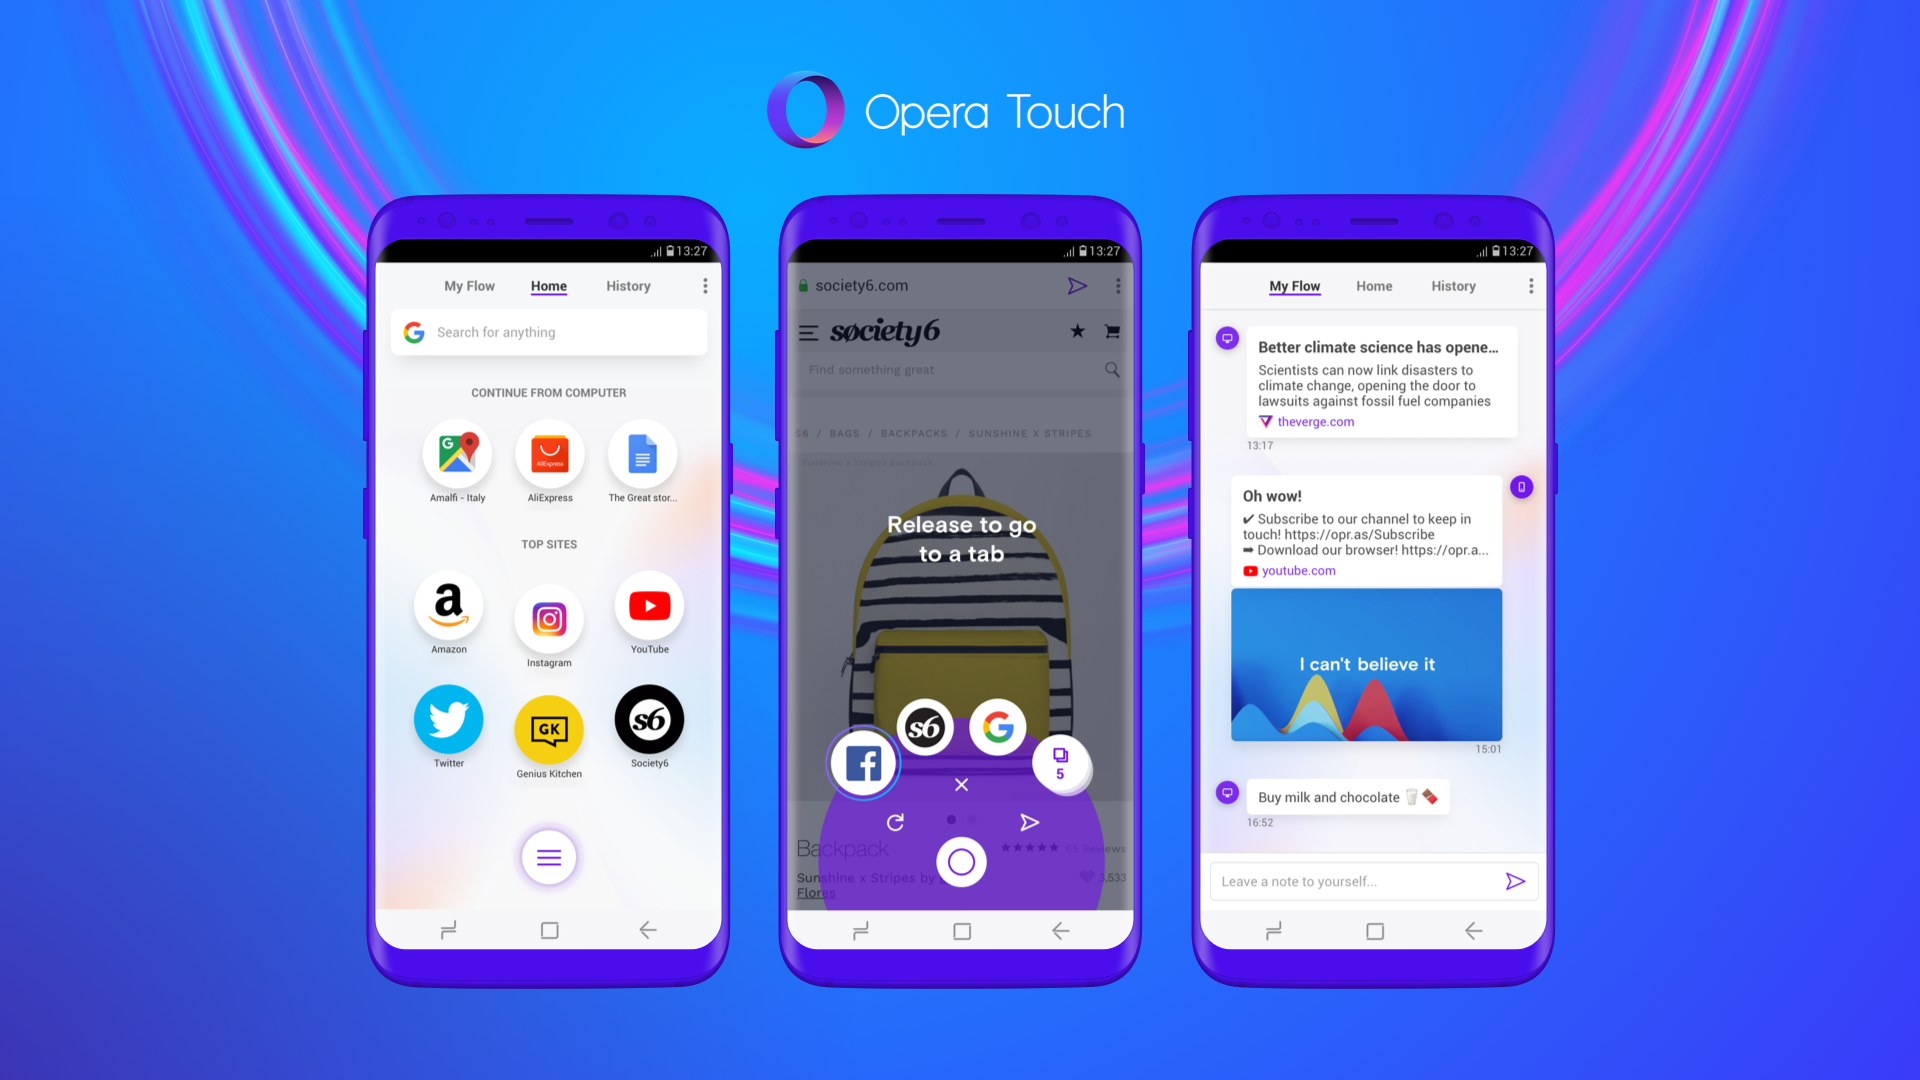 Opera launches a new mobile browser